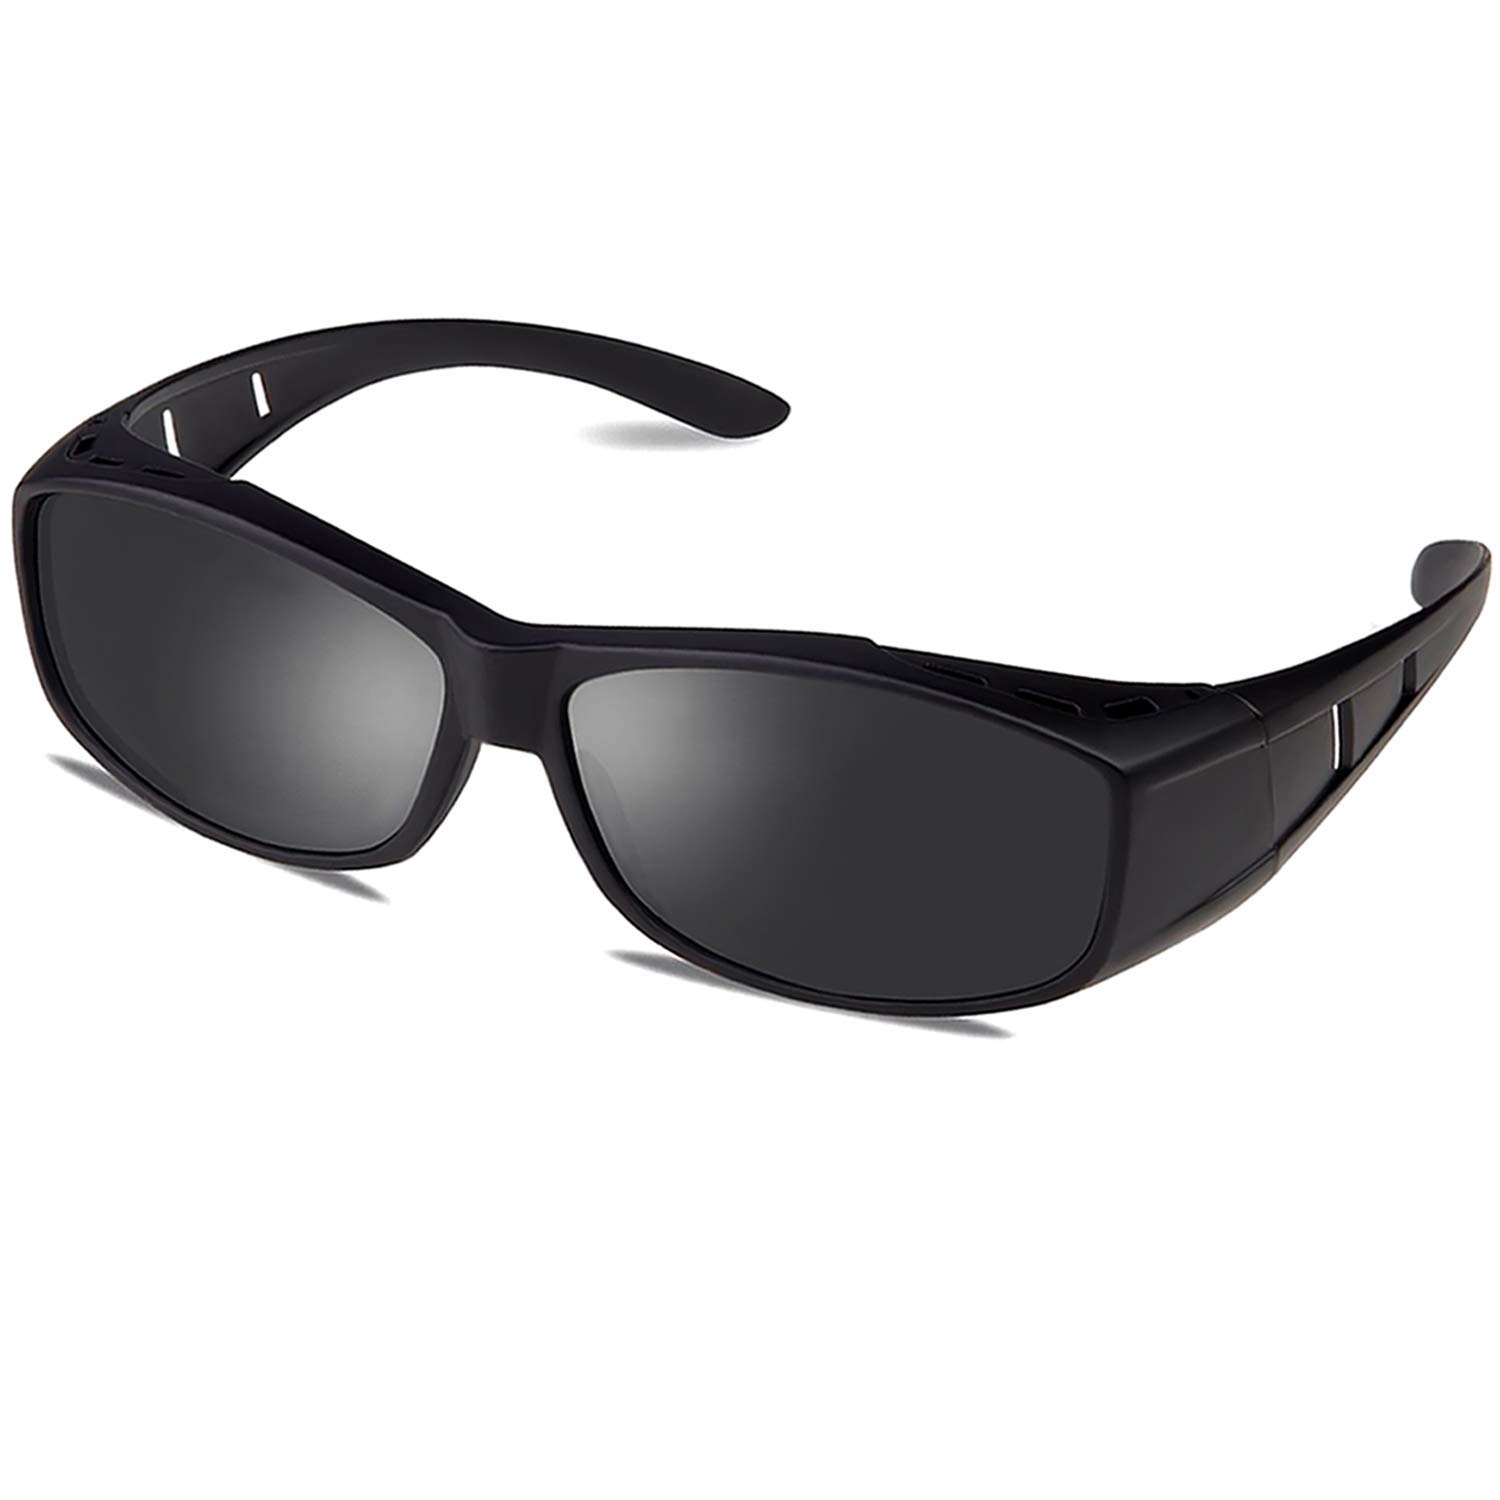 Wear Over Glasses Sunglasses - Polarized - Fit Over Prescription Glasses UV Protection Sunglasses